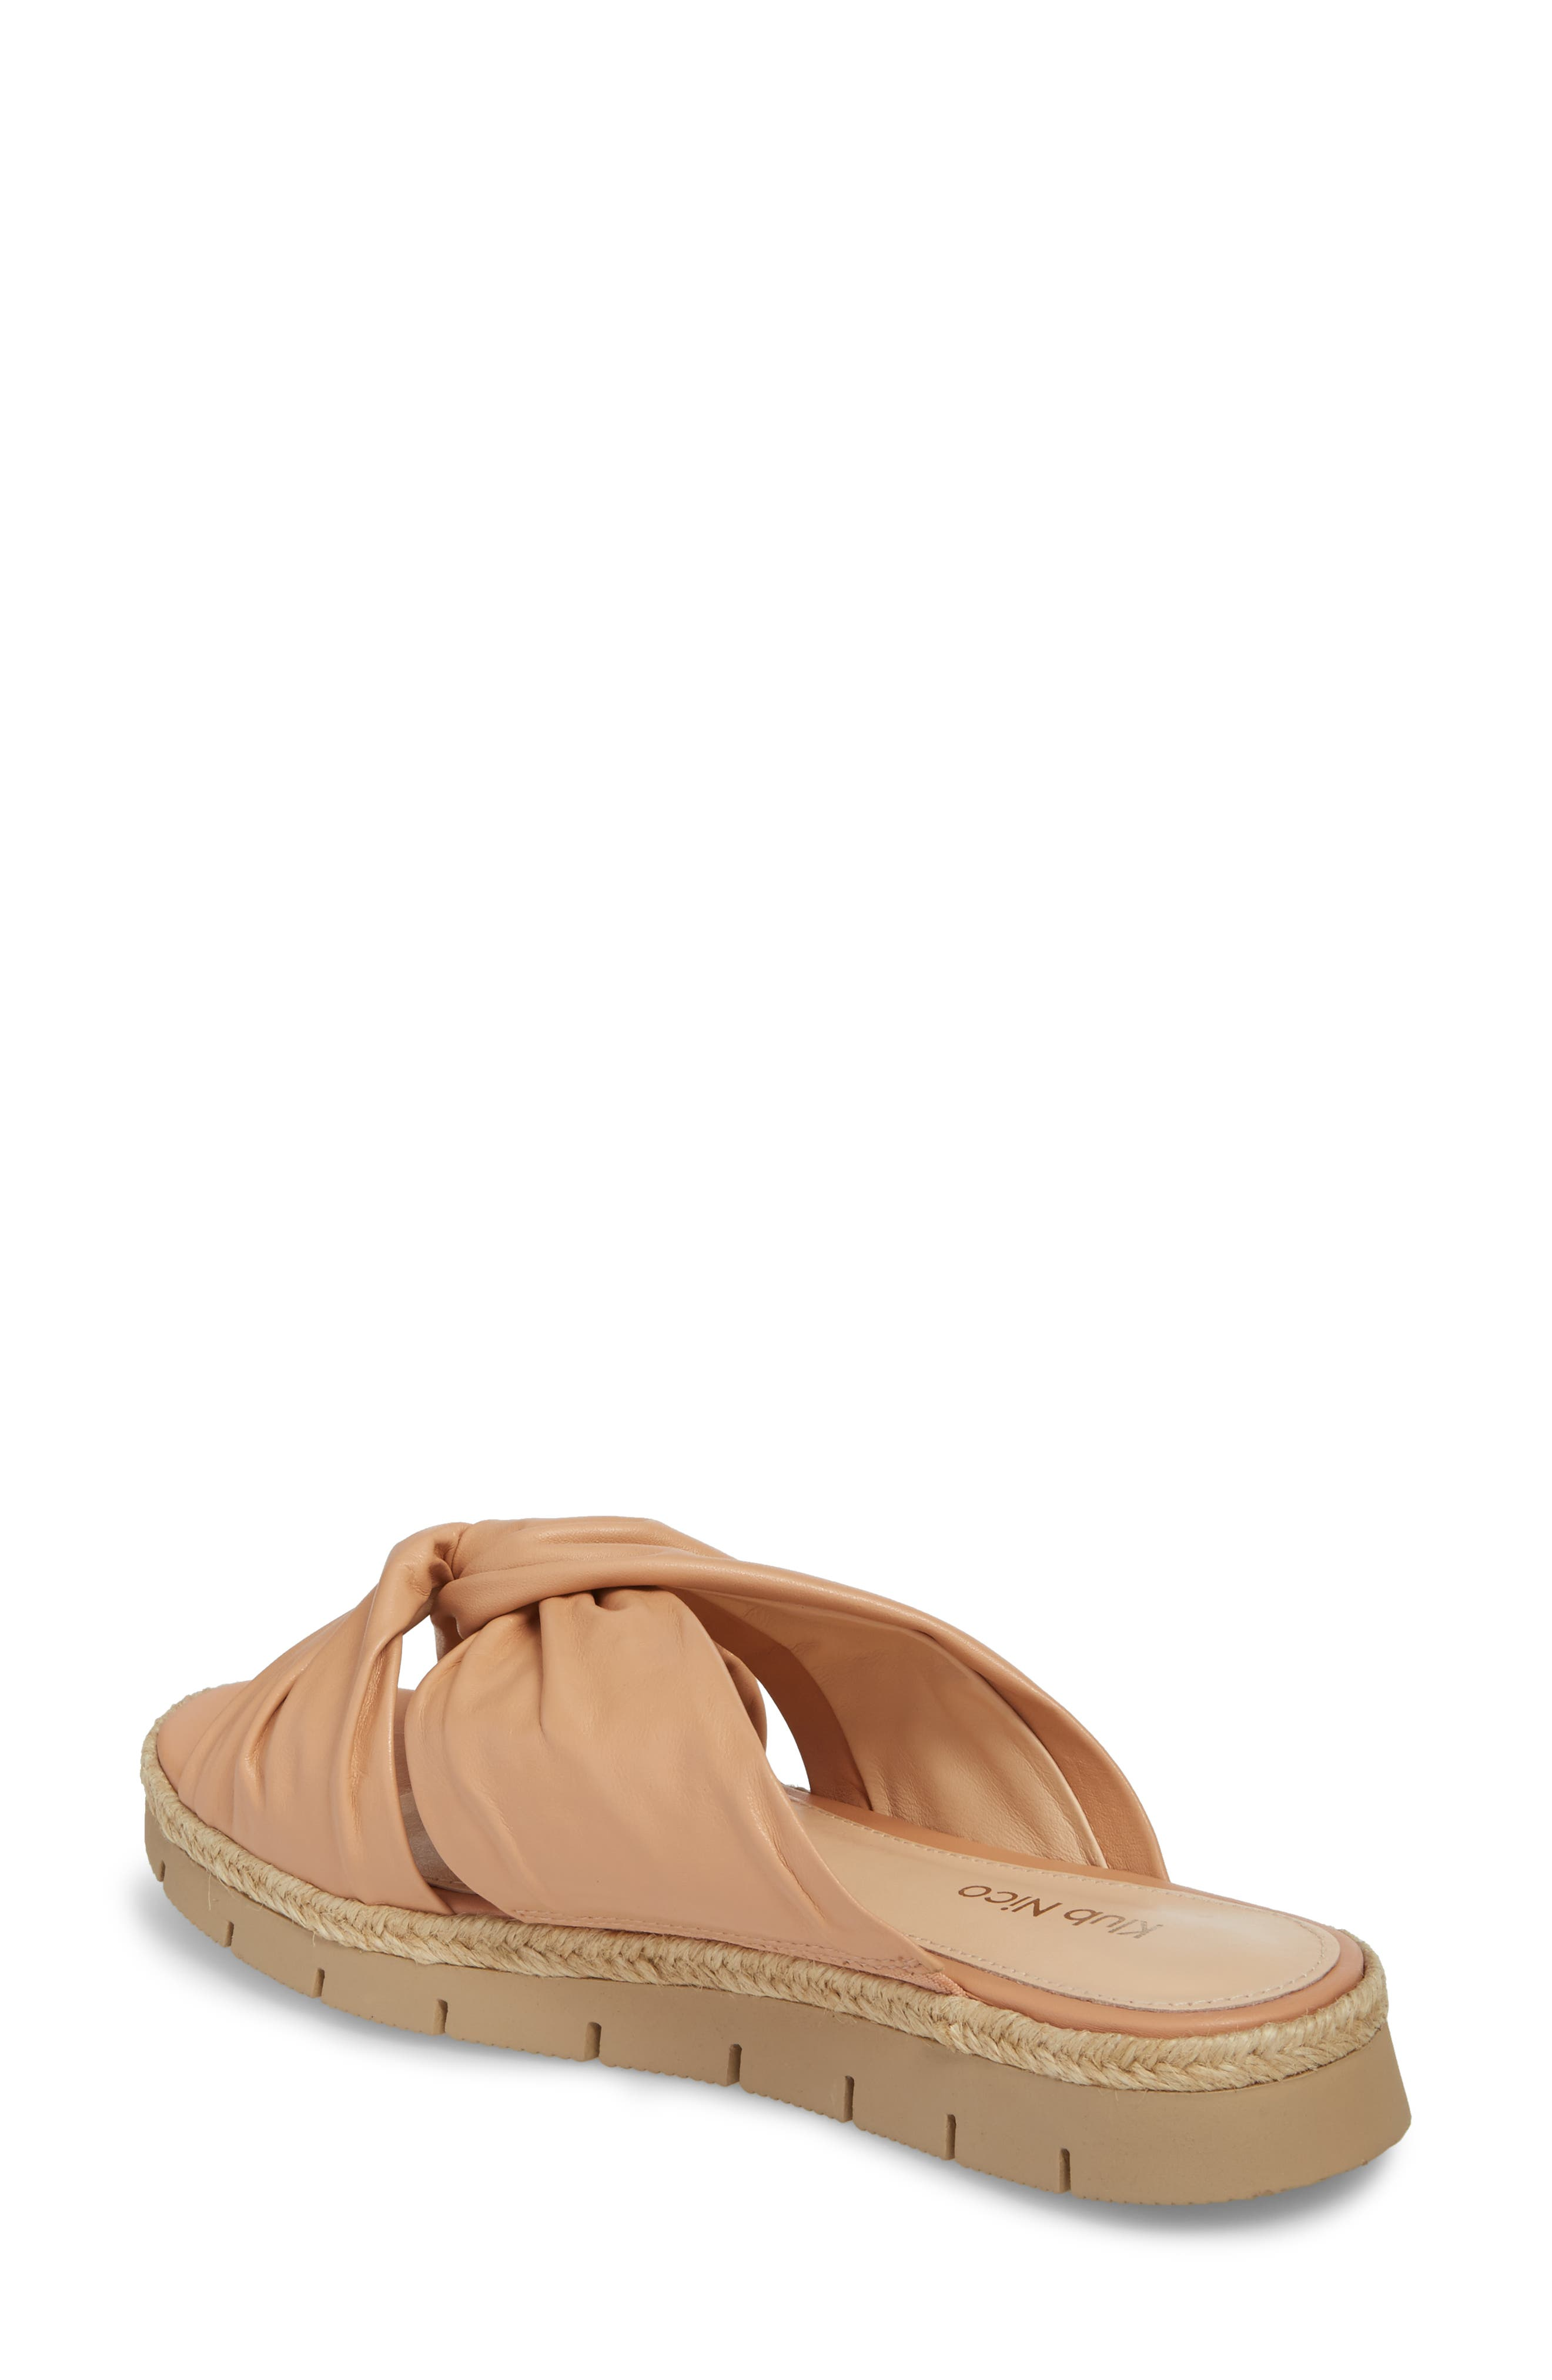 KLUB NICO, Charlie Slide Sandal, Alternate thumbnail 2, color, PEACH LEATHER